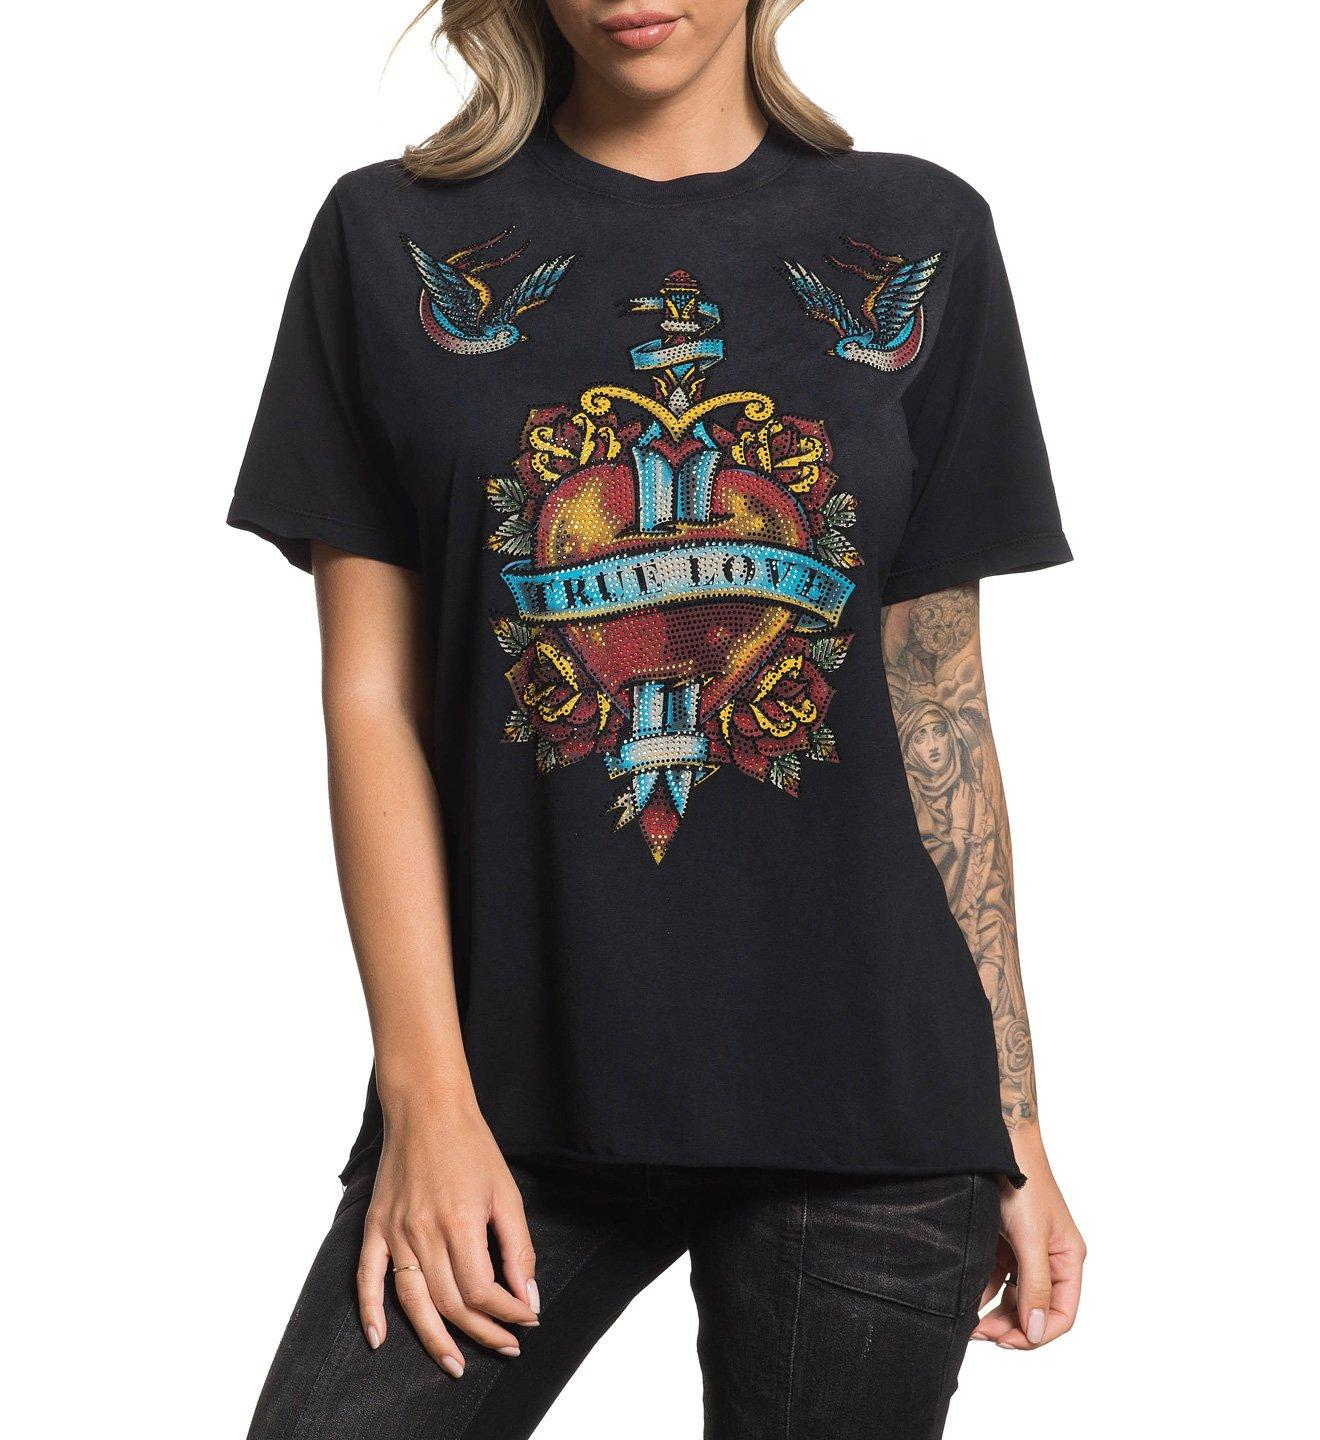 True - Womens Short Sleeve Tees - Affliction Clothing